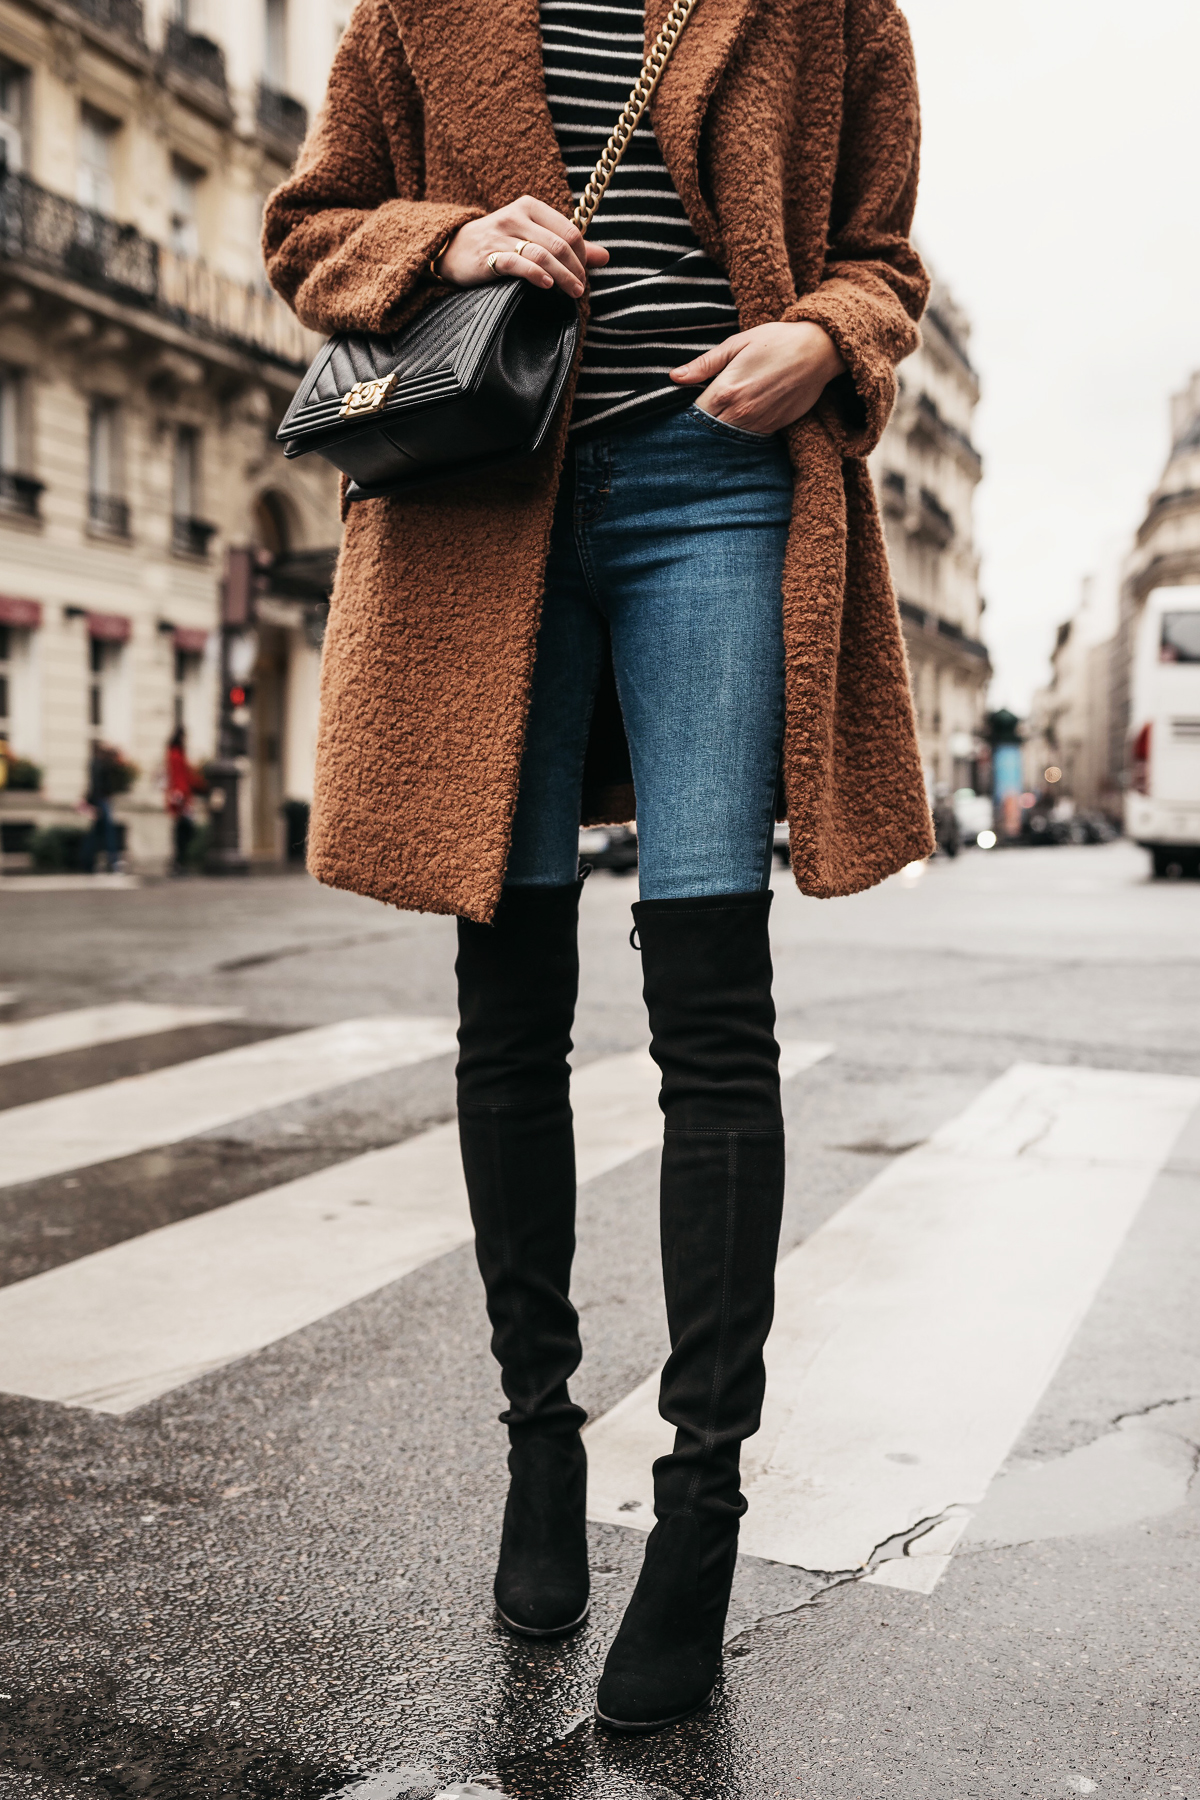 Teddy Bear Coat Black White Stripe Turtleneck Sweater Denim Jeans Stuart Weitzman Black Over-the-Knee Boots Chanel Boy Bag Paris Street Style Fashion Jackson Dallas Blogger Fashion Blogger Street Style